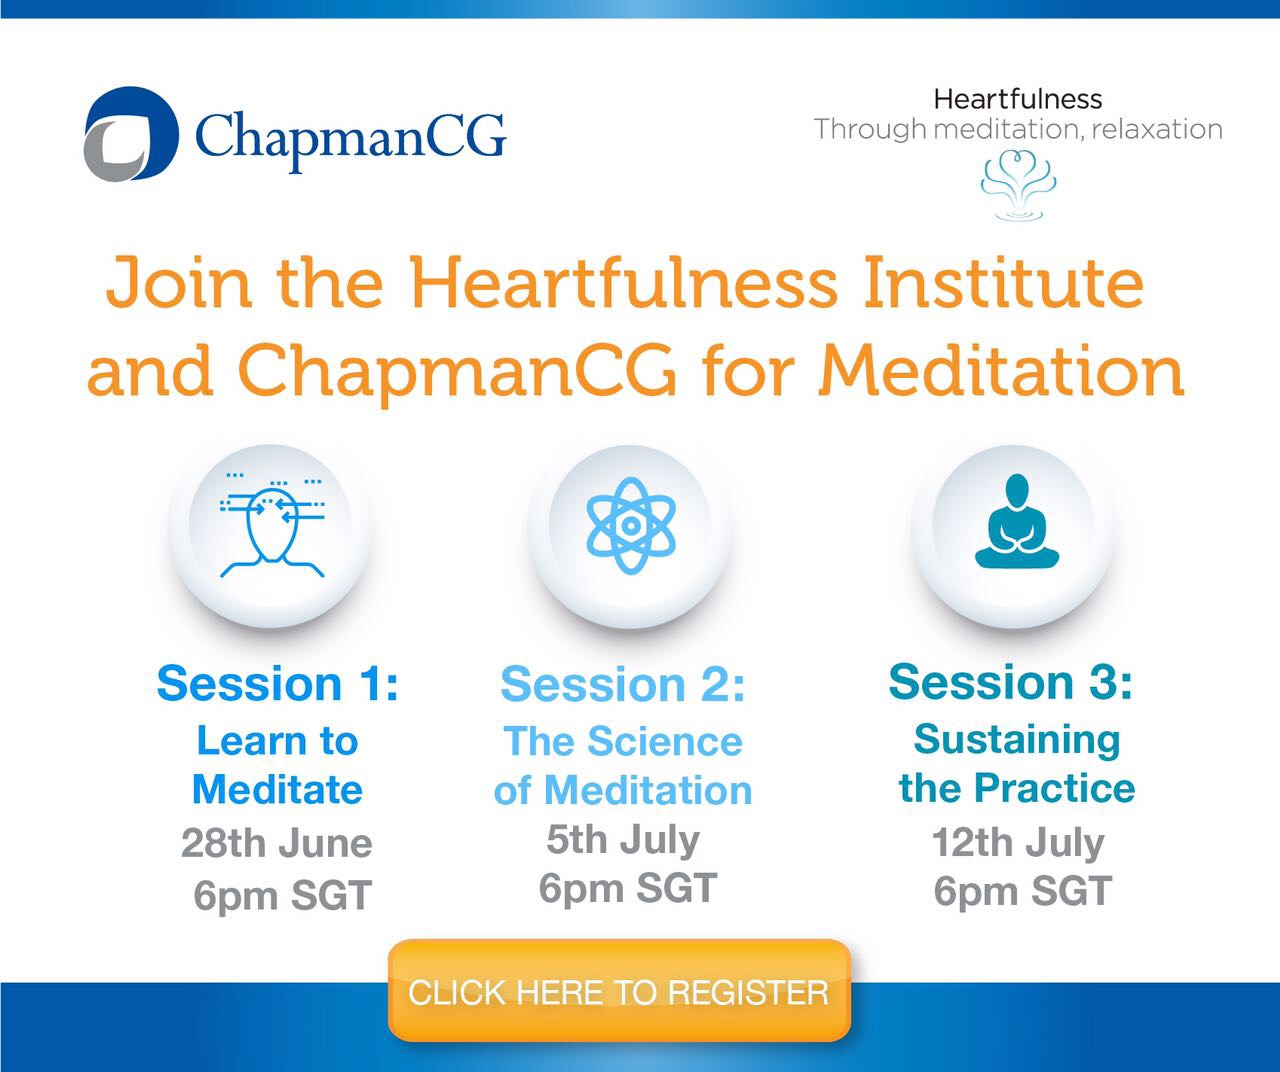 ​ChapmanCG and Heartfulness Institute Meditation Series